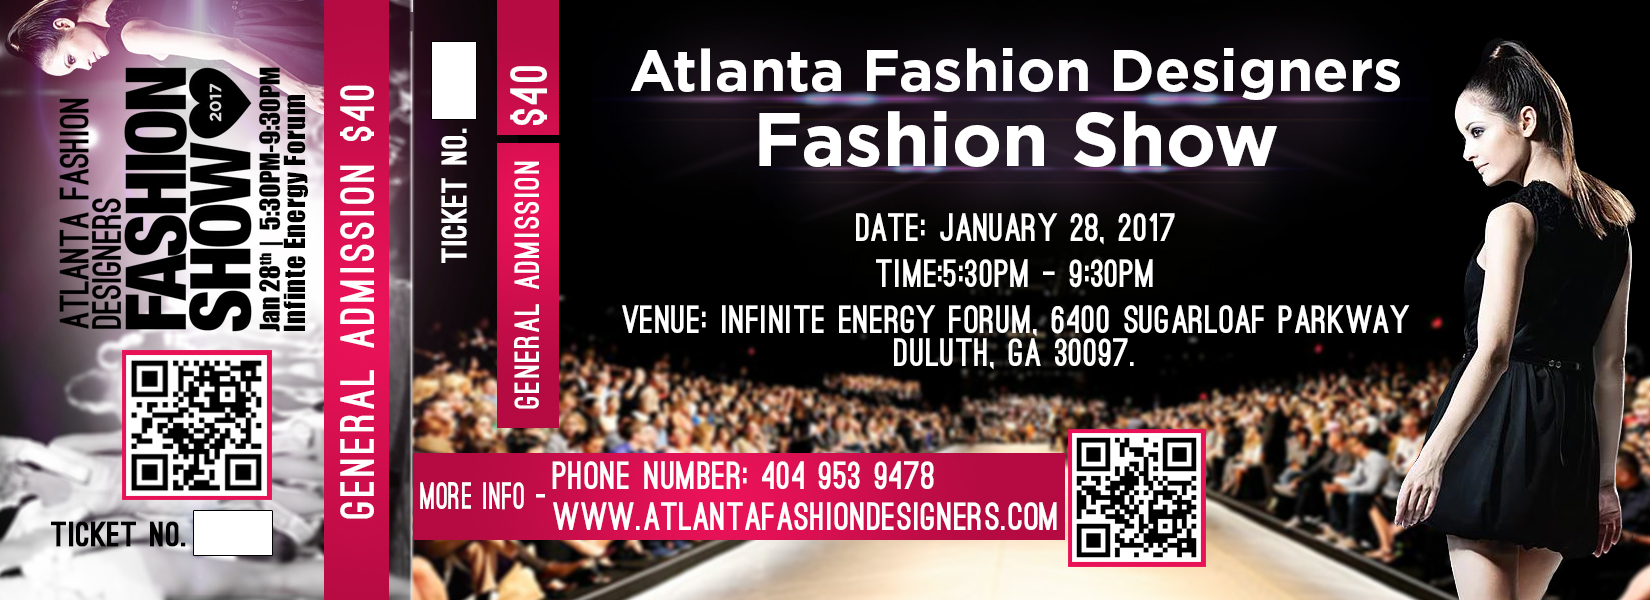 Atlanta Fashion Designers Fashion Show Tickets Are Still Selling ...